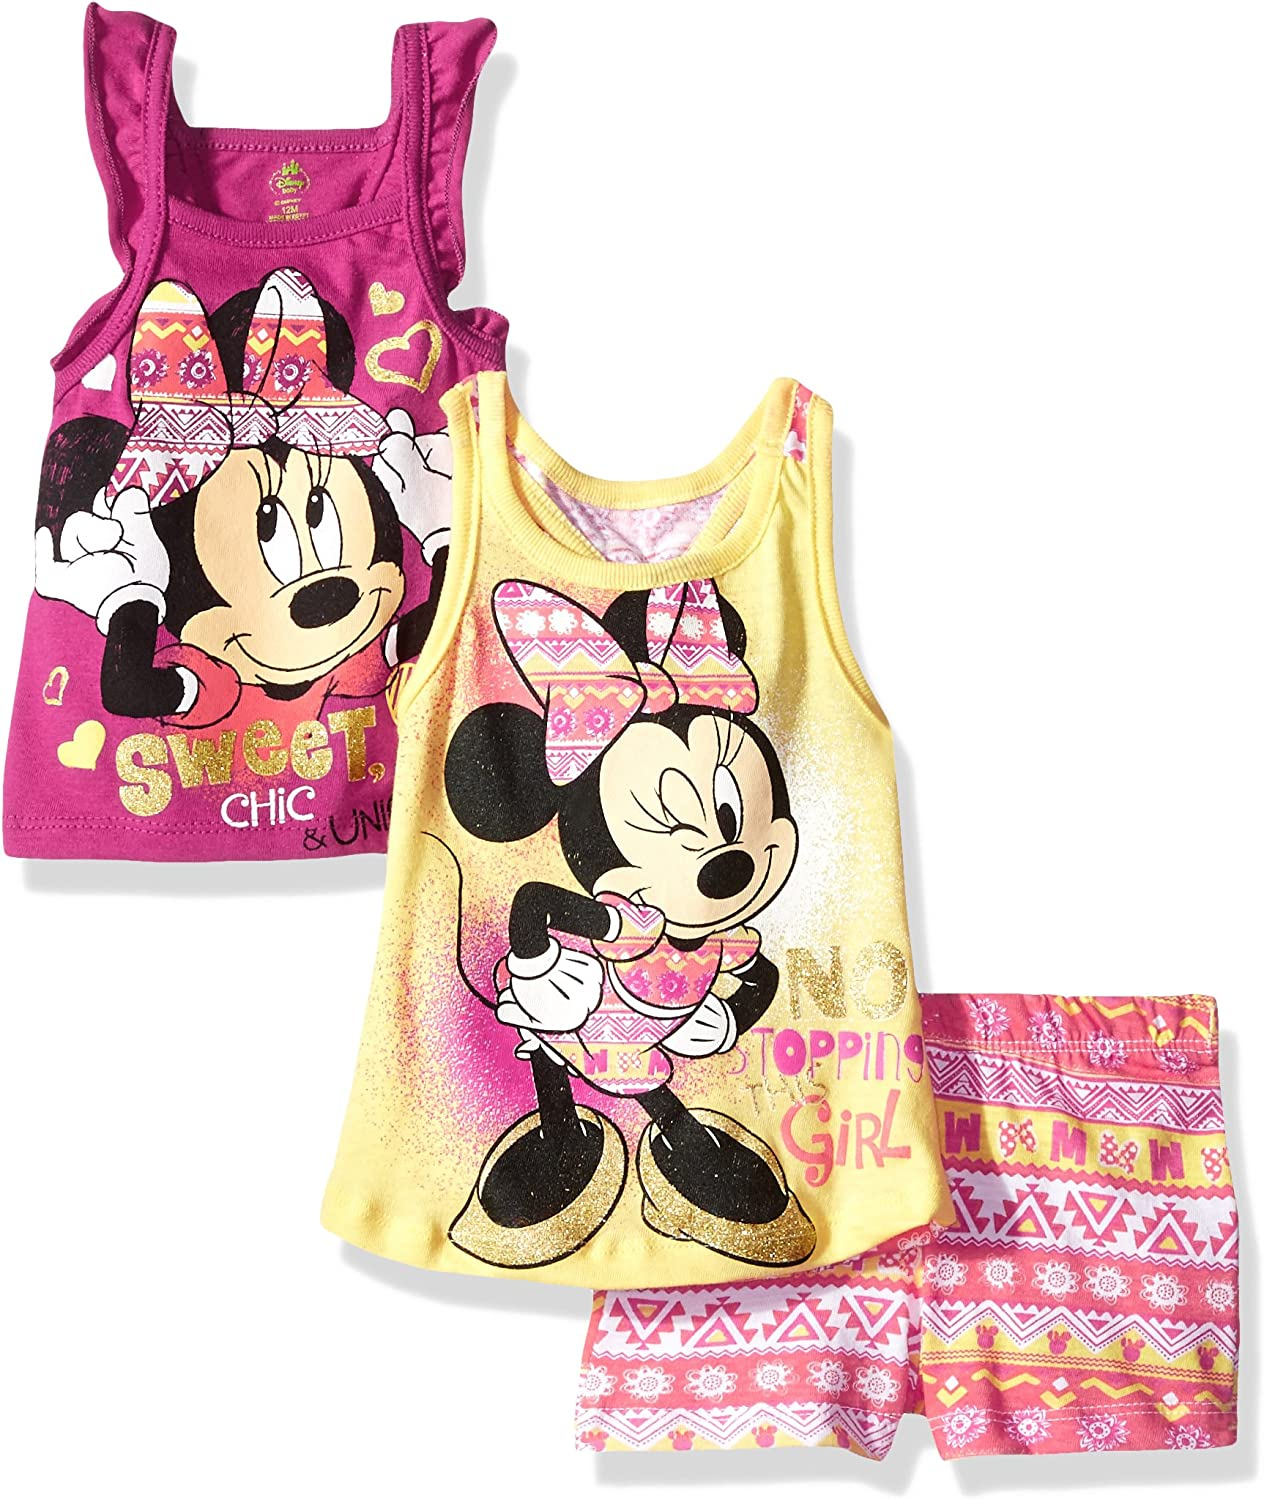 Handmade new minnie mouse shorts size 4-5T girls toddlers dresses pants ready to ship free shipping red black yellow white summer wear